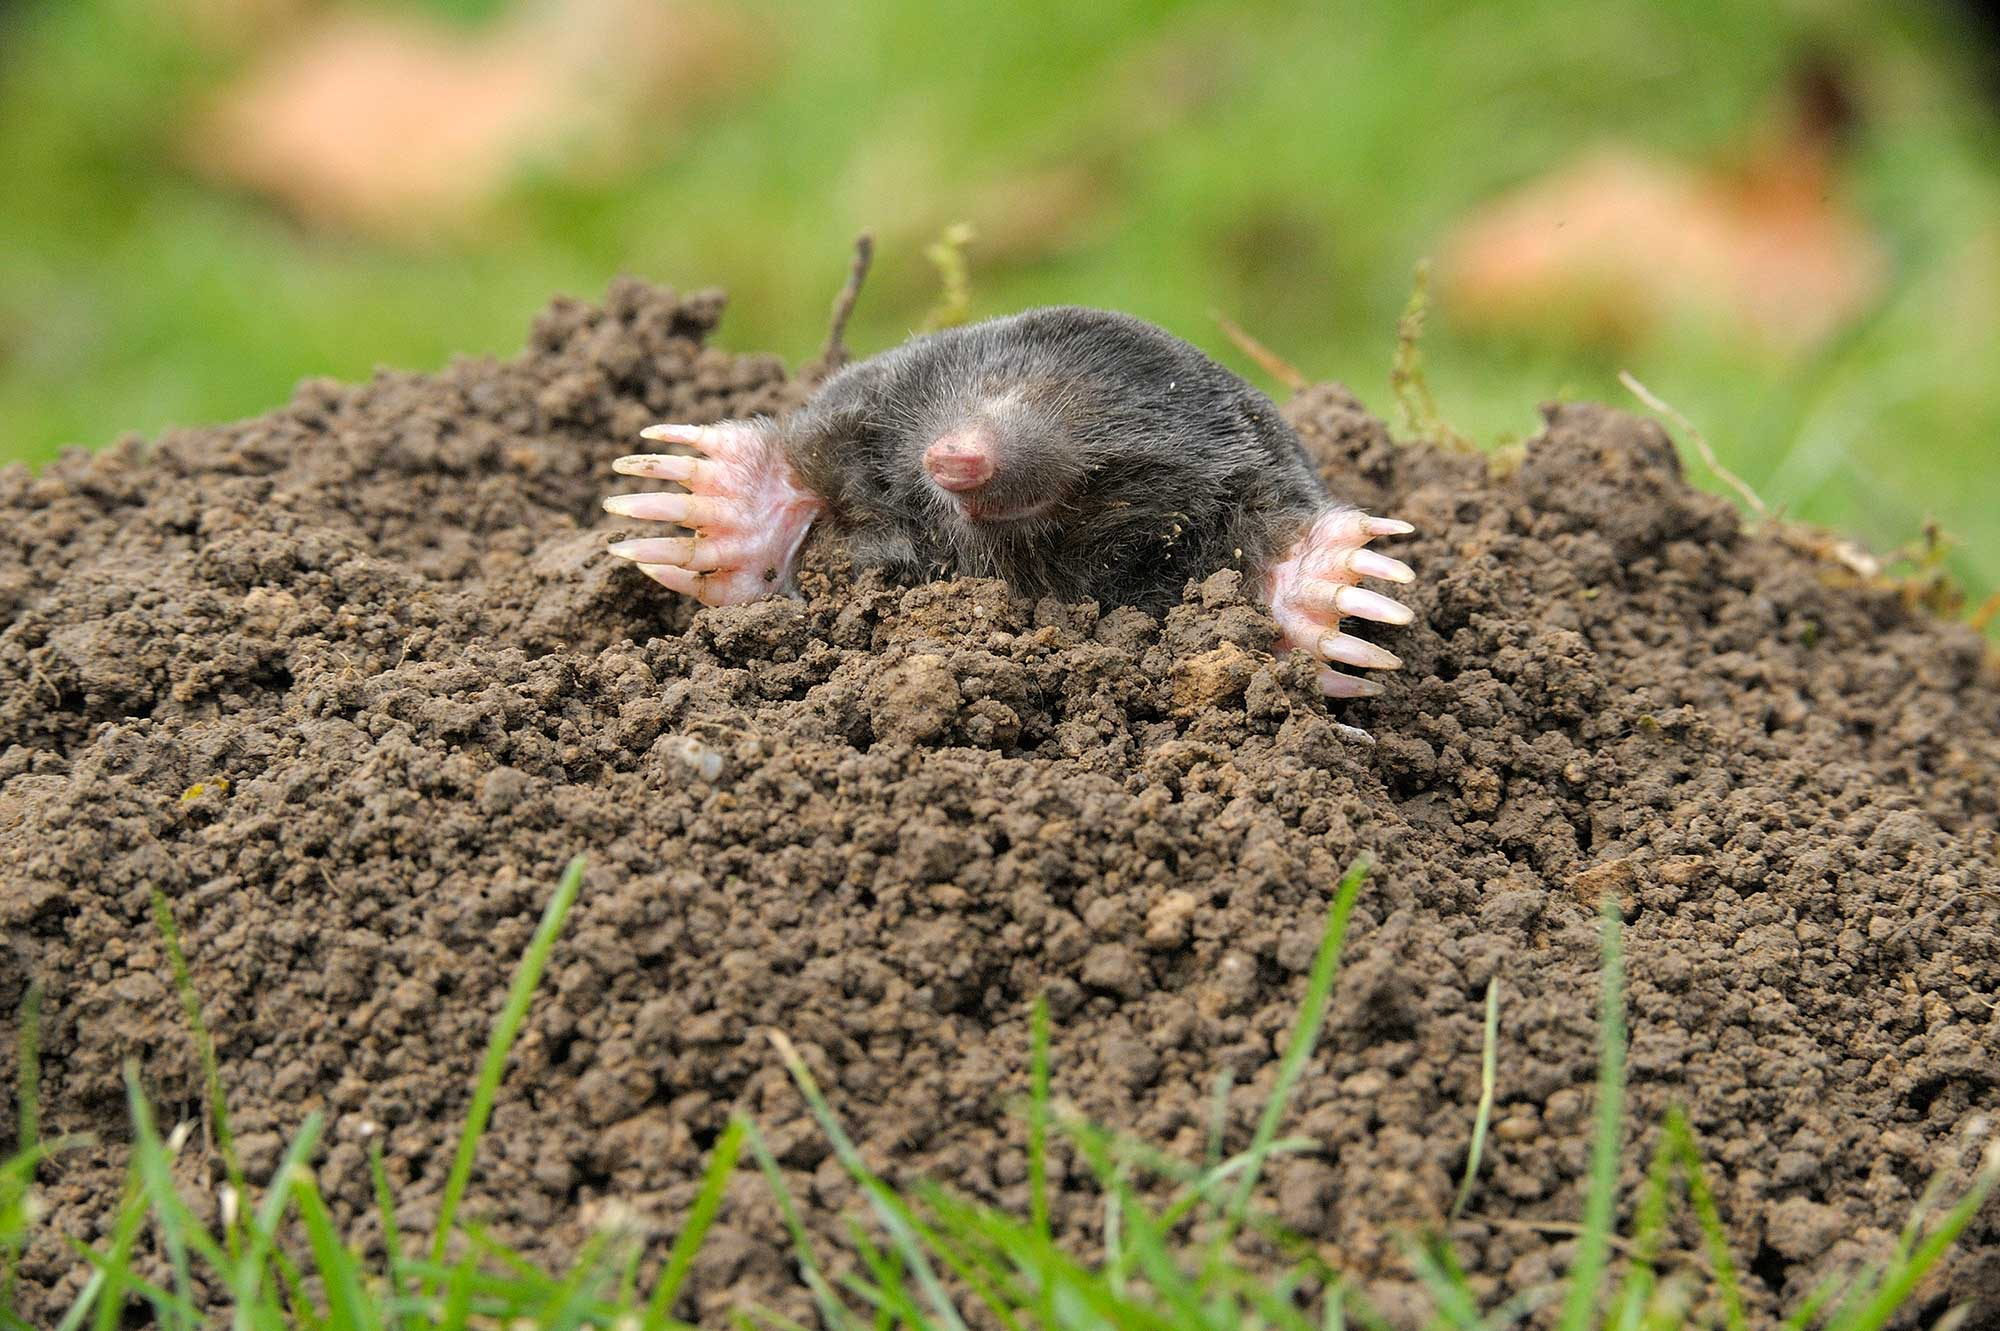 A mole emerging from its hole in the grass